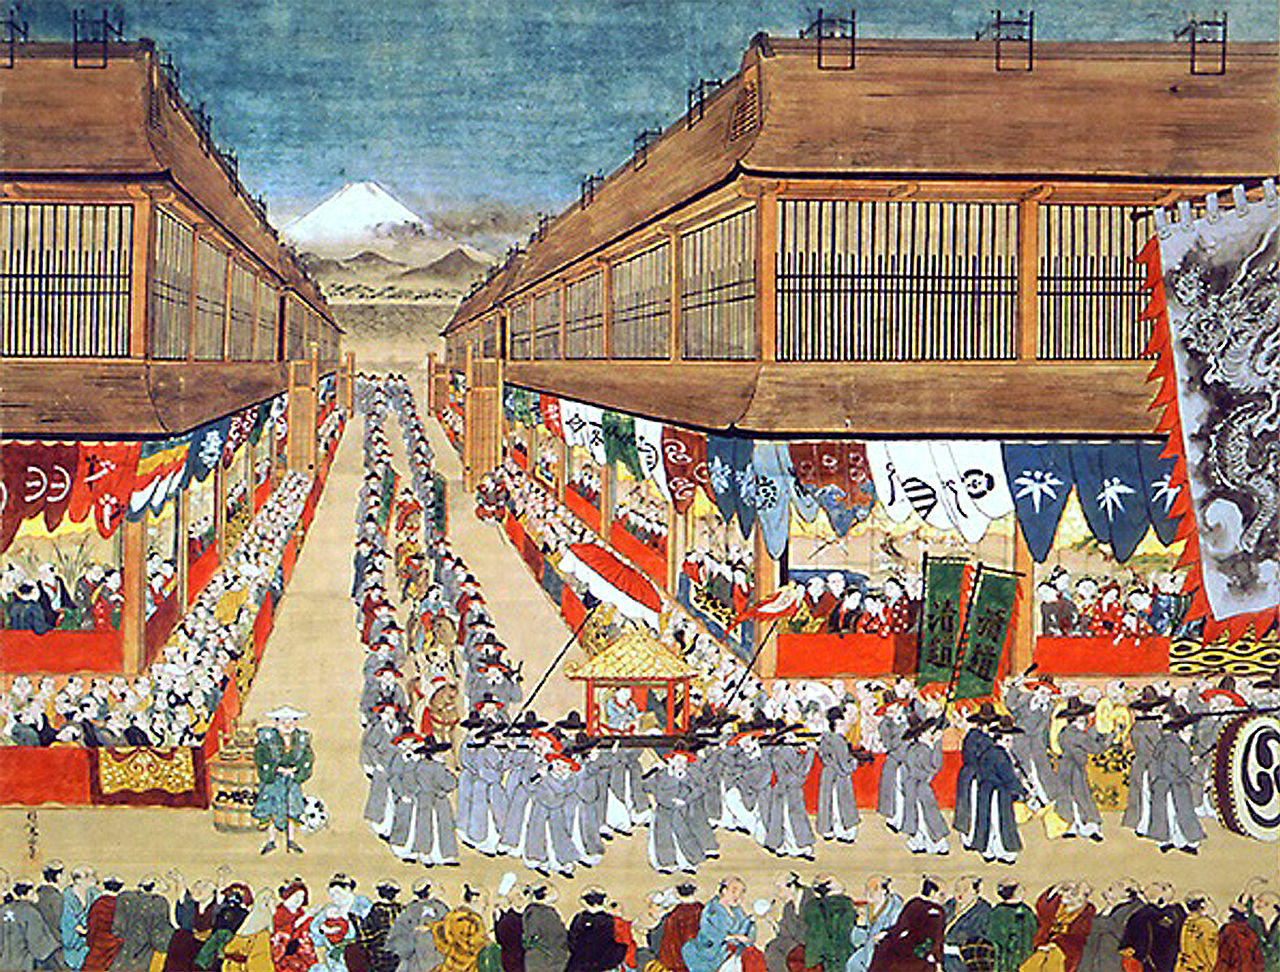 the sophisticated popular culture of the edo period